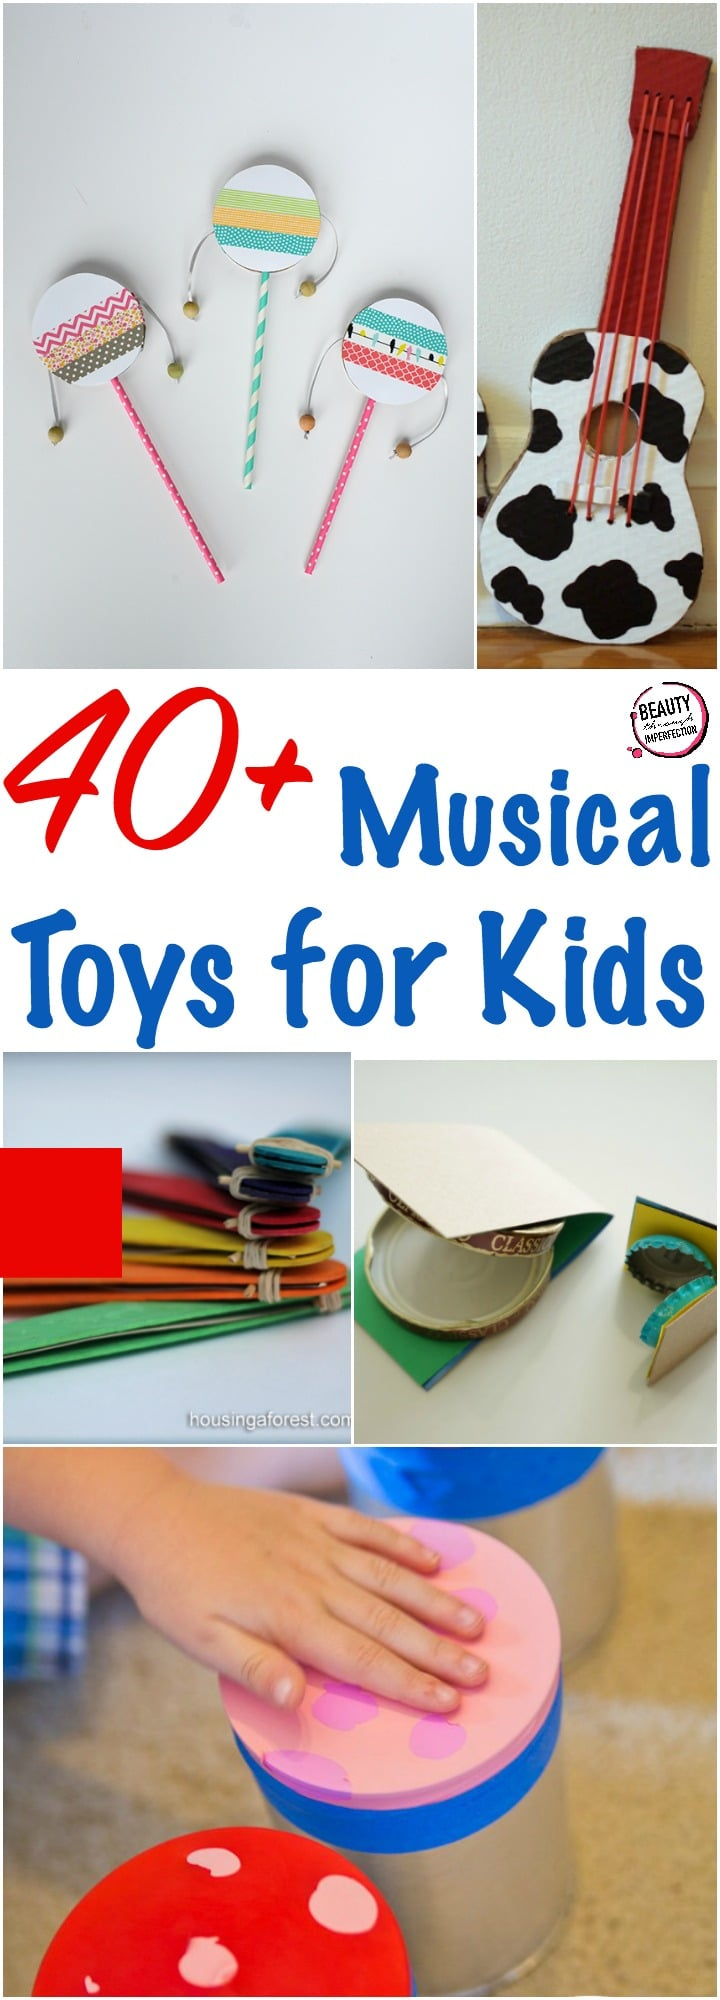 Musical Toys For Toddlers : Musical toys for kids beauty through imperfection